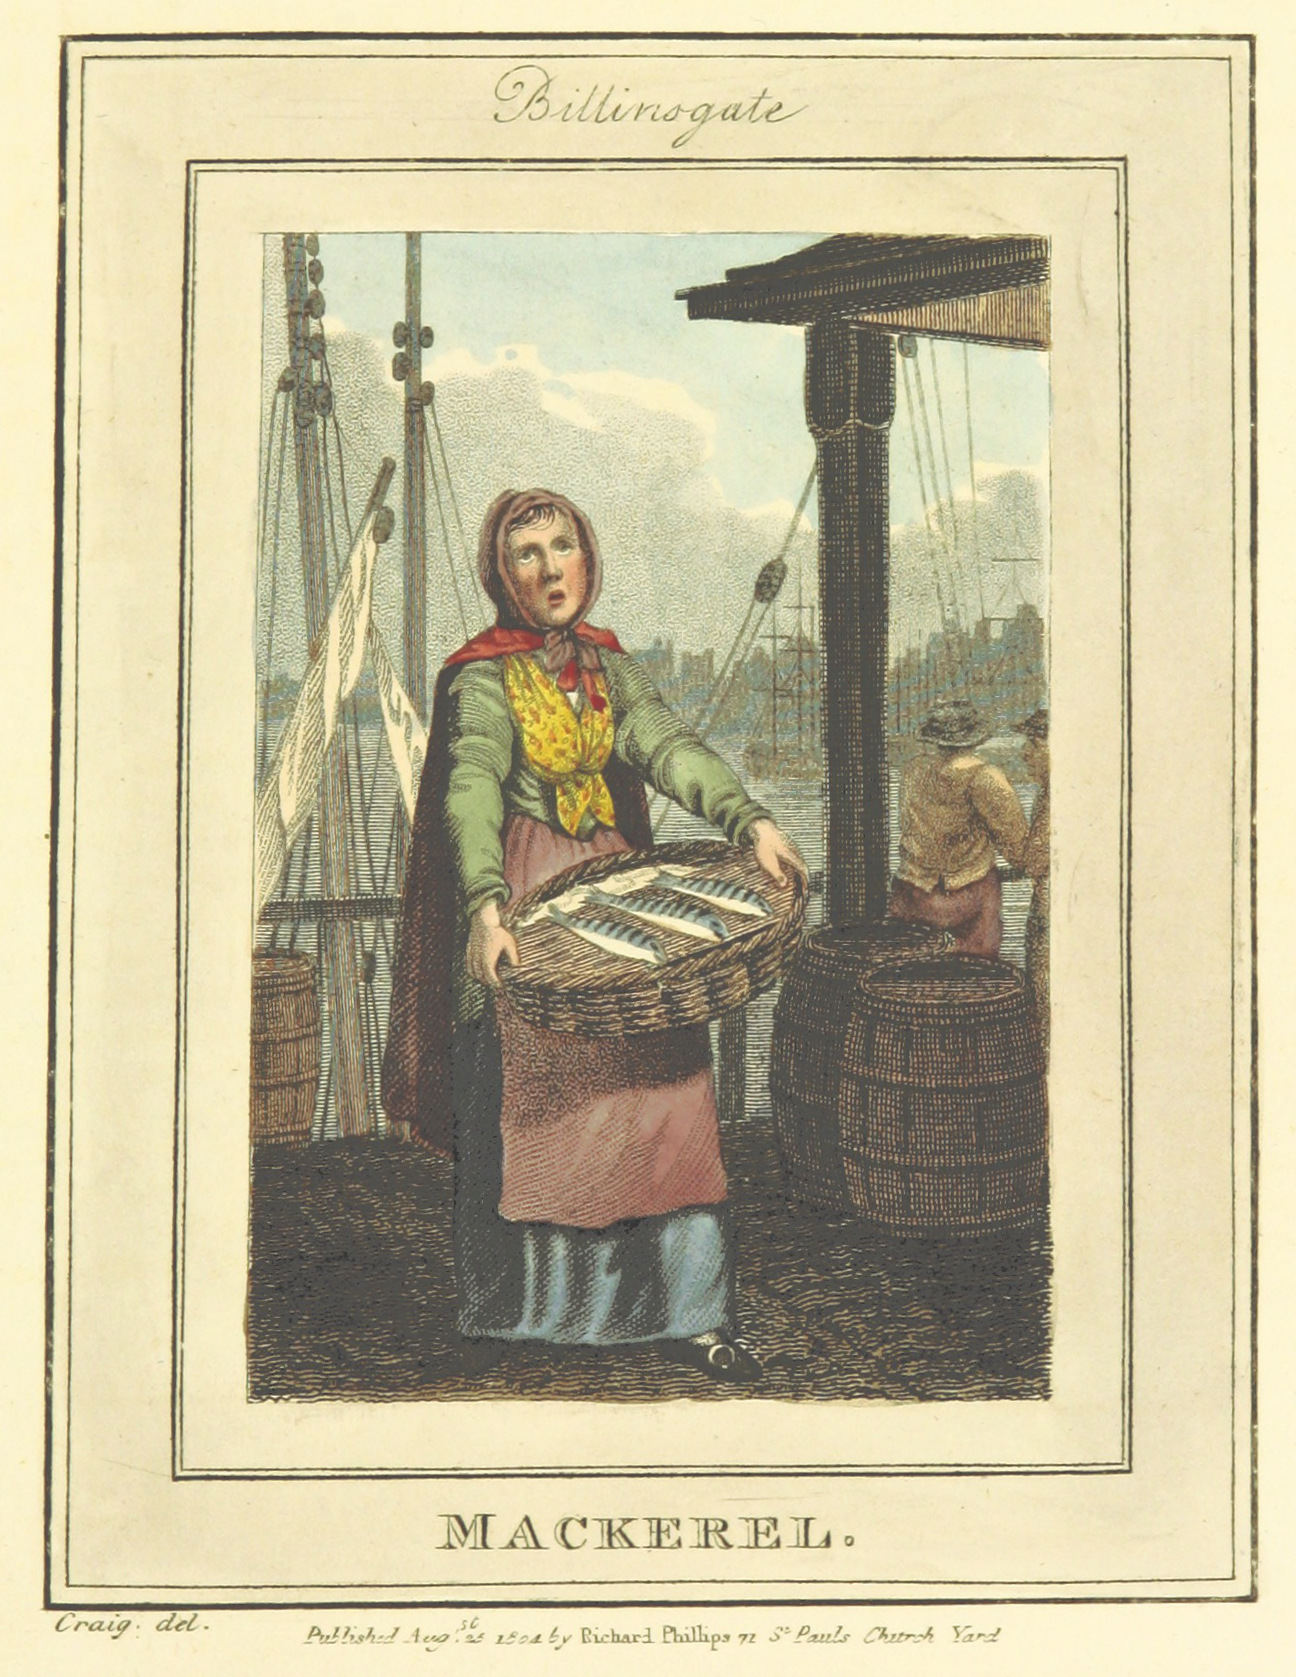 Phillips(1804)_p621_-_Billingsgate_-_Mackerel